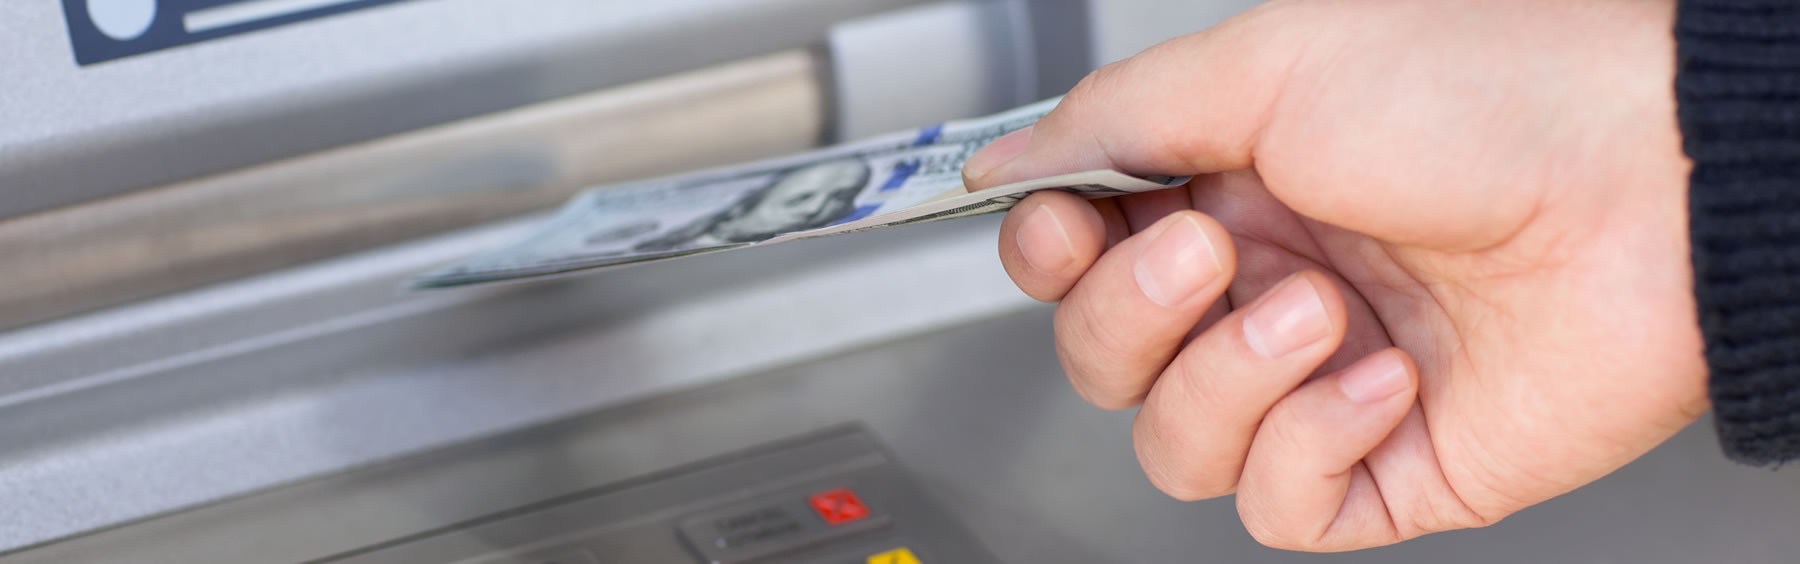 Funds Access Inc. has ATM sales and leasing programs.